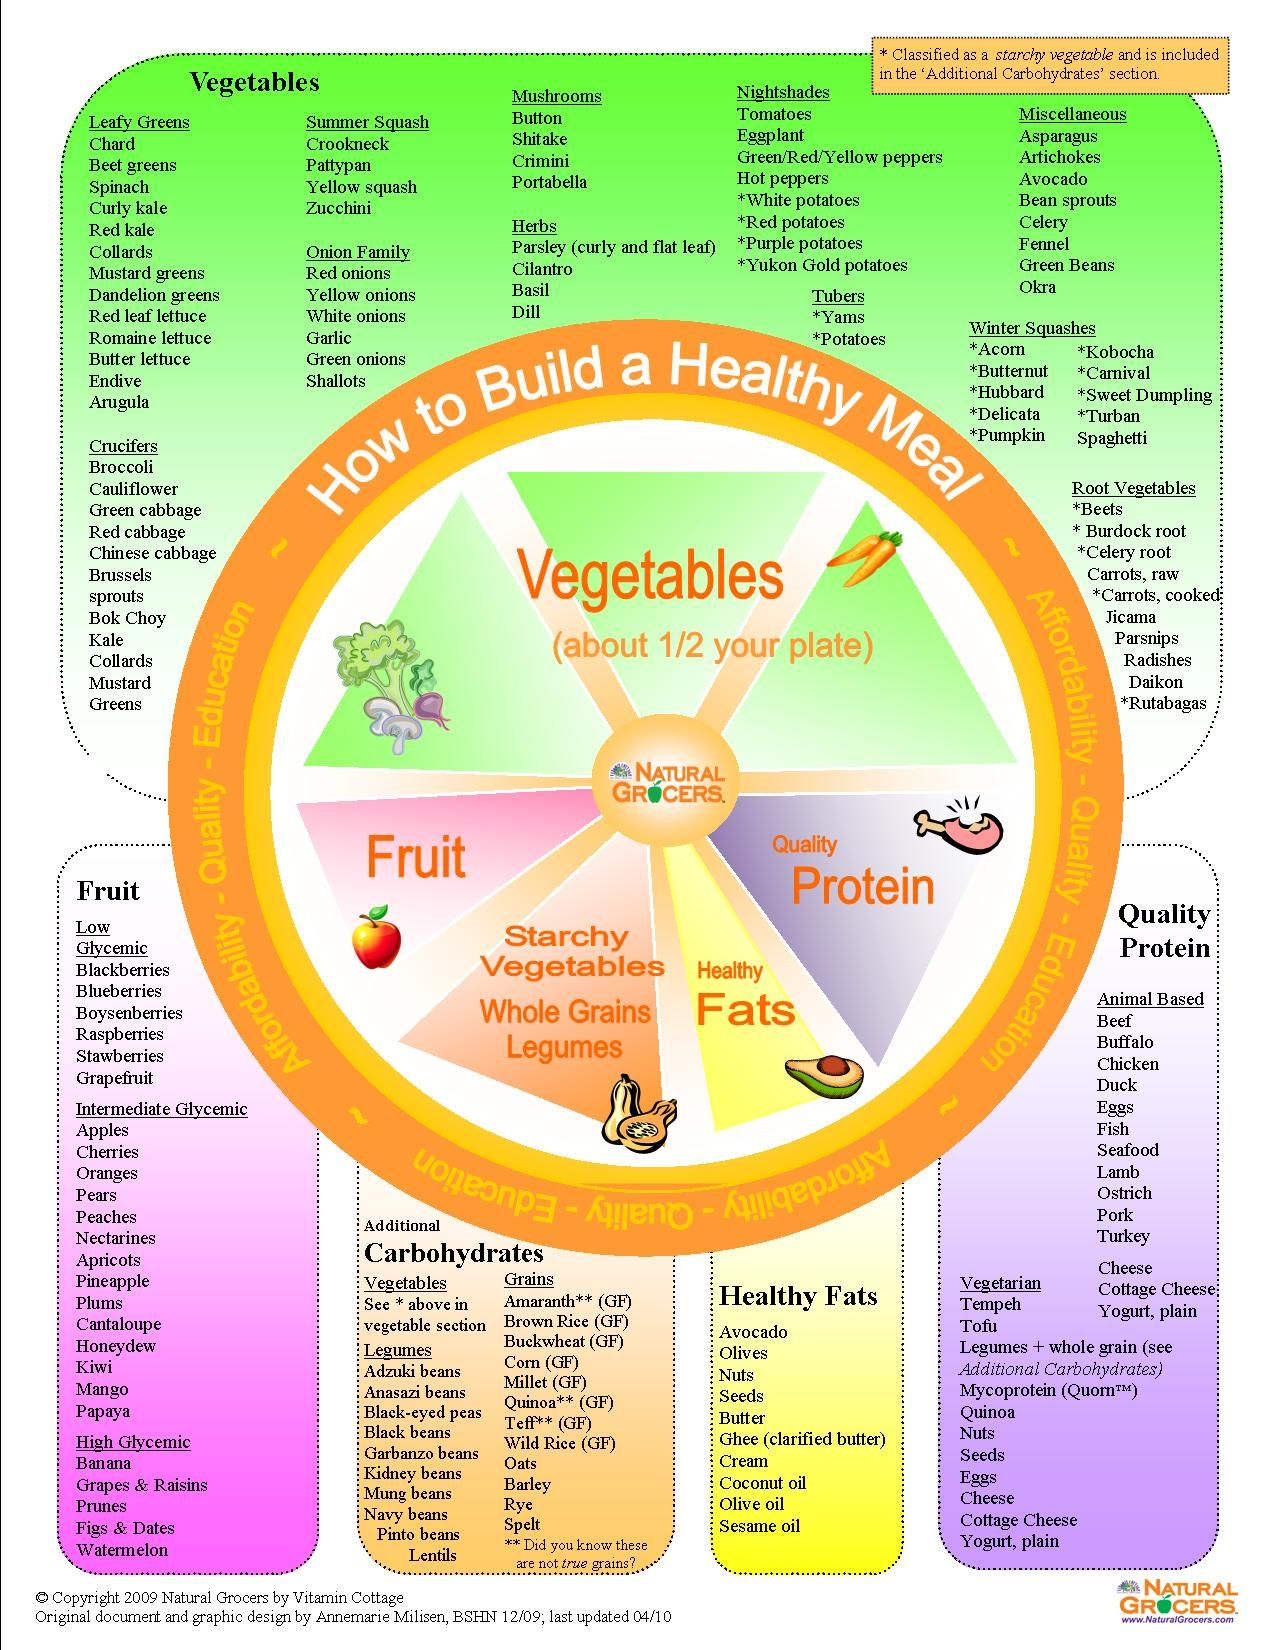 how to build a healthy meal from natural grocers [ 1275 x 1650 Pixel ]